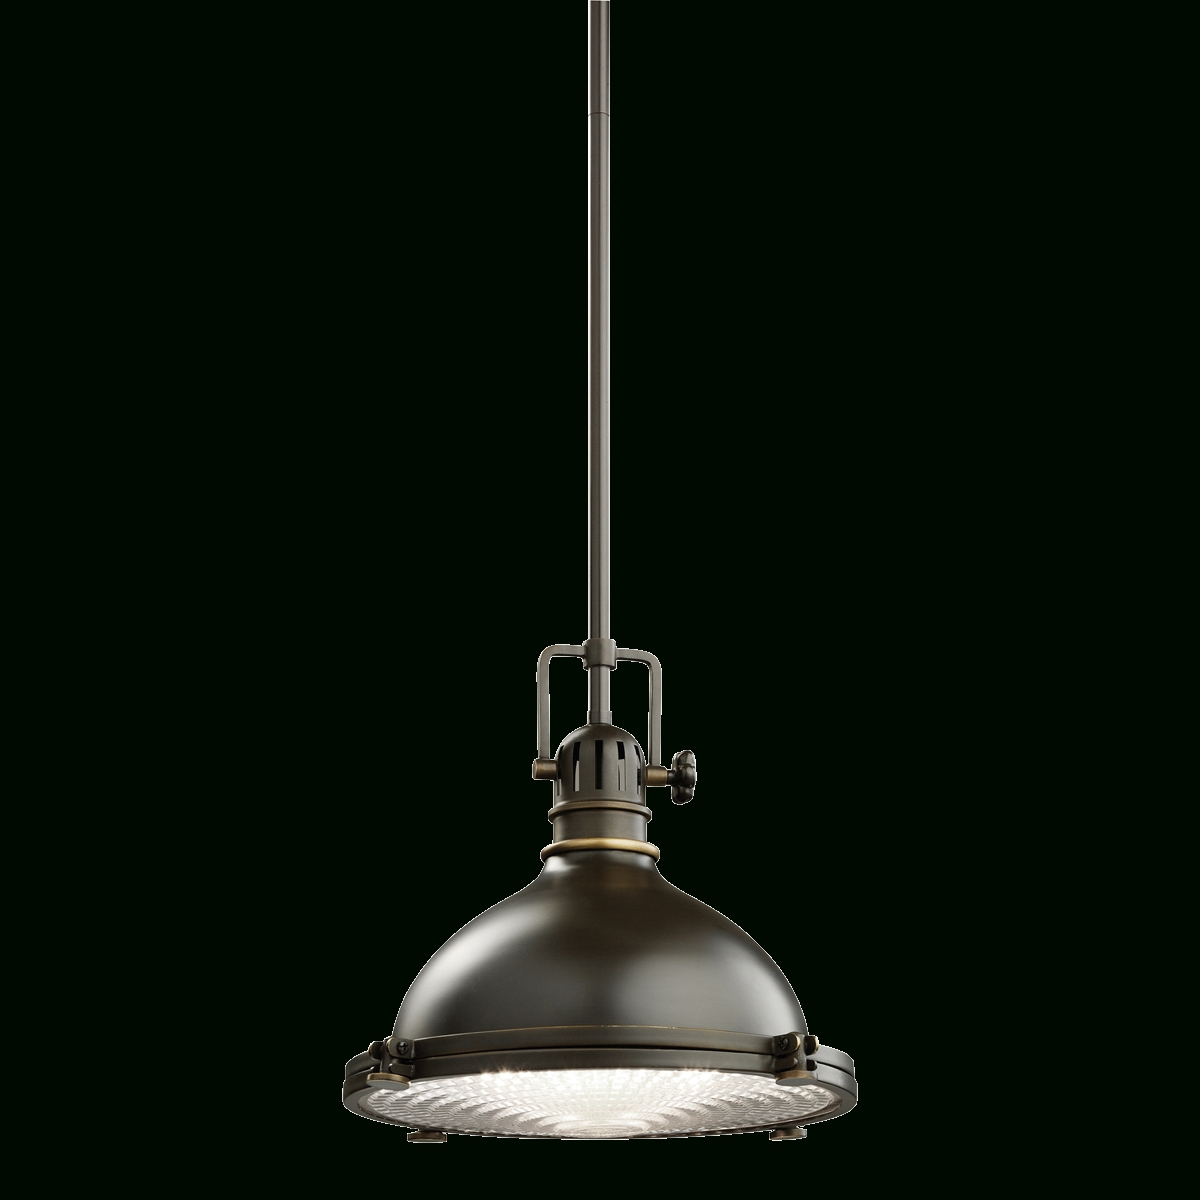 Decorations : Charming Industrial Black Pendant Lighting Decor with regard to Industrial Looking Pendant Lights Fixtures (Image 4 of 15)